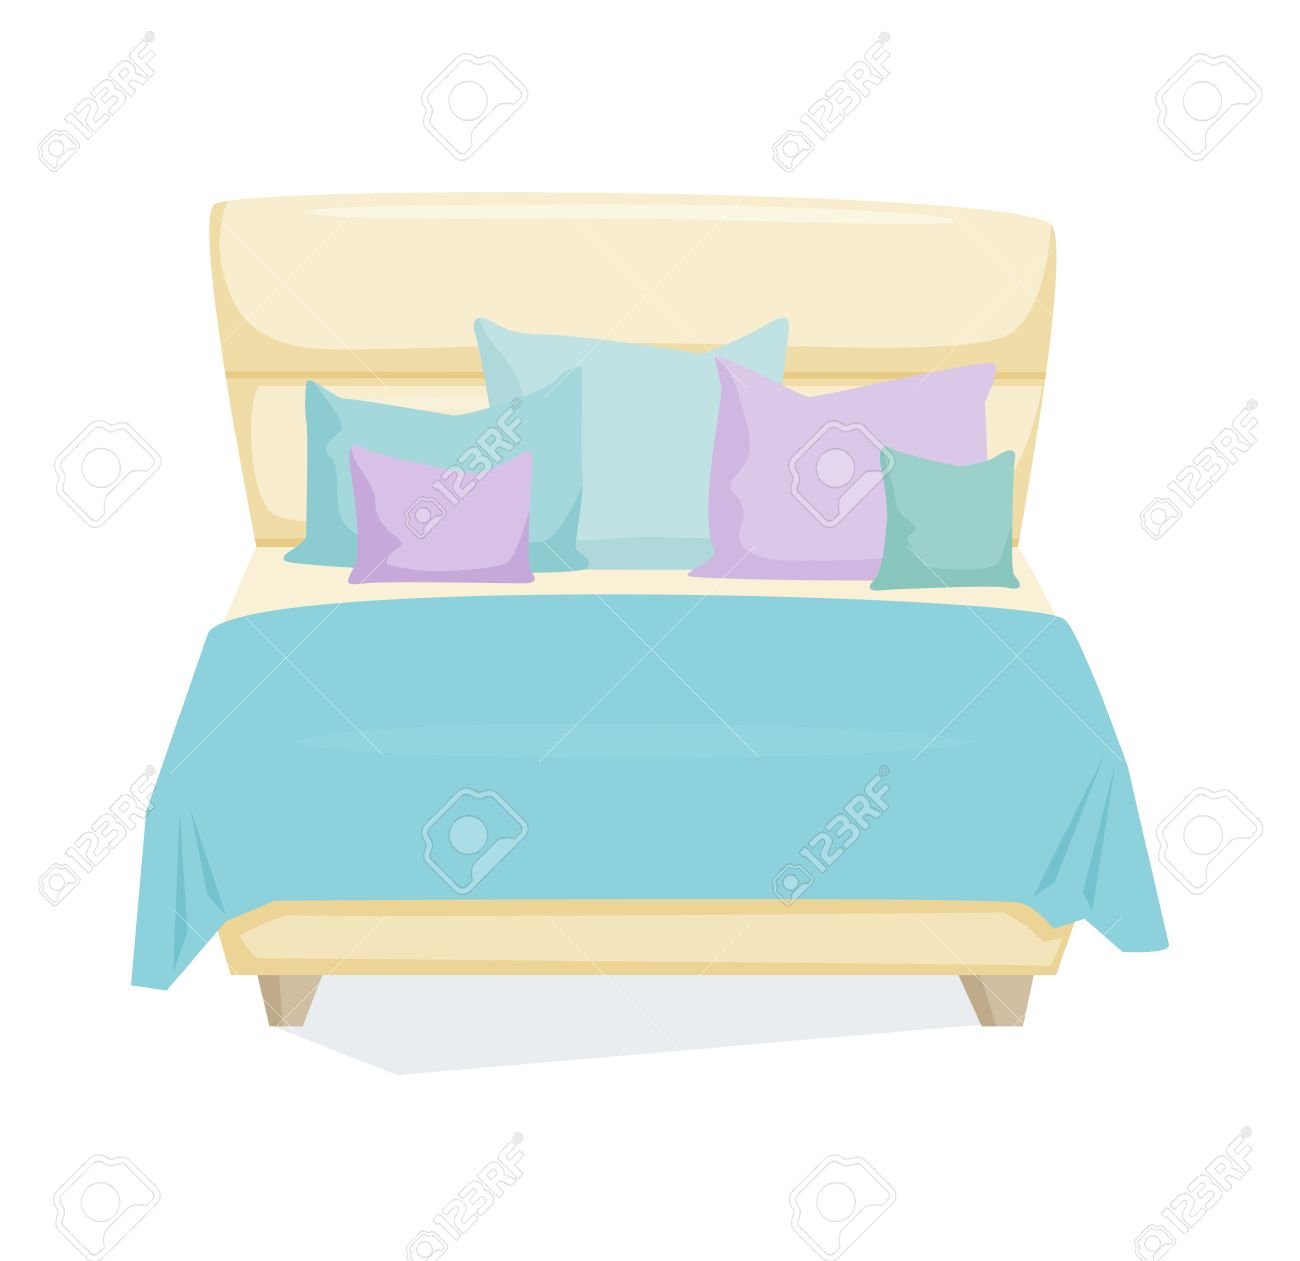 Double Bed And Pillow With Blanket In Modern Style. Double Bed ... for Pillow And Blanket Clipart  83fiz